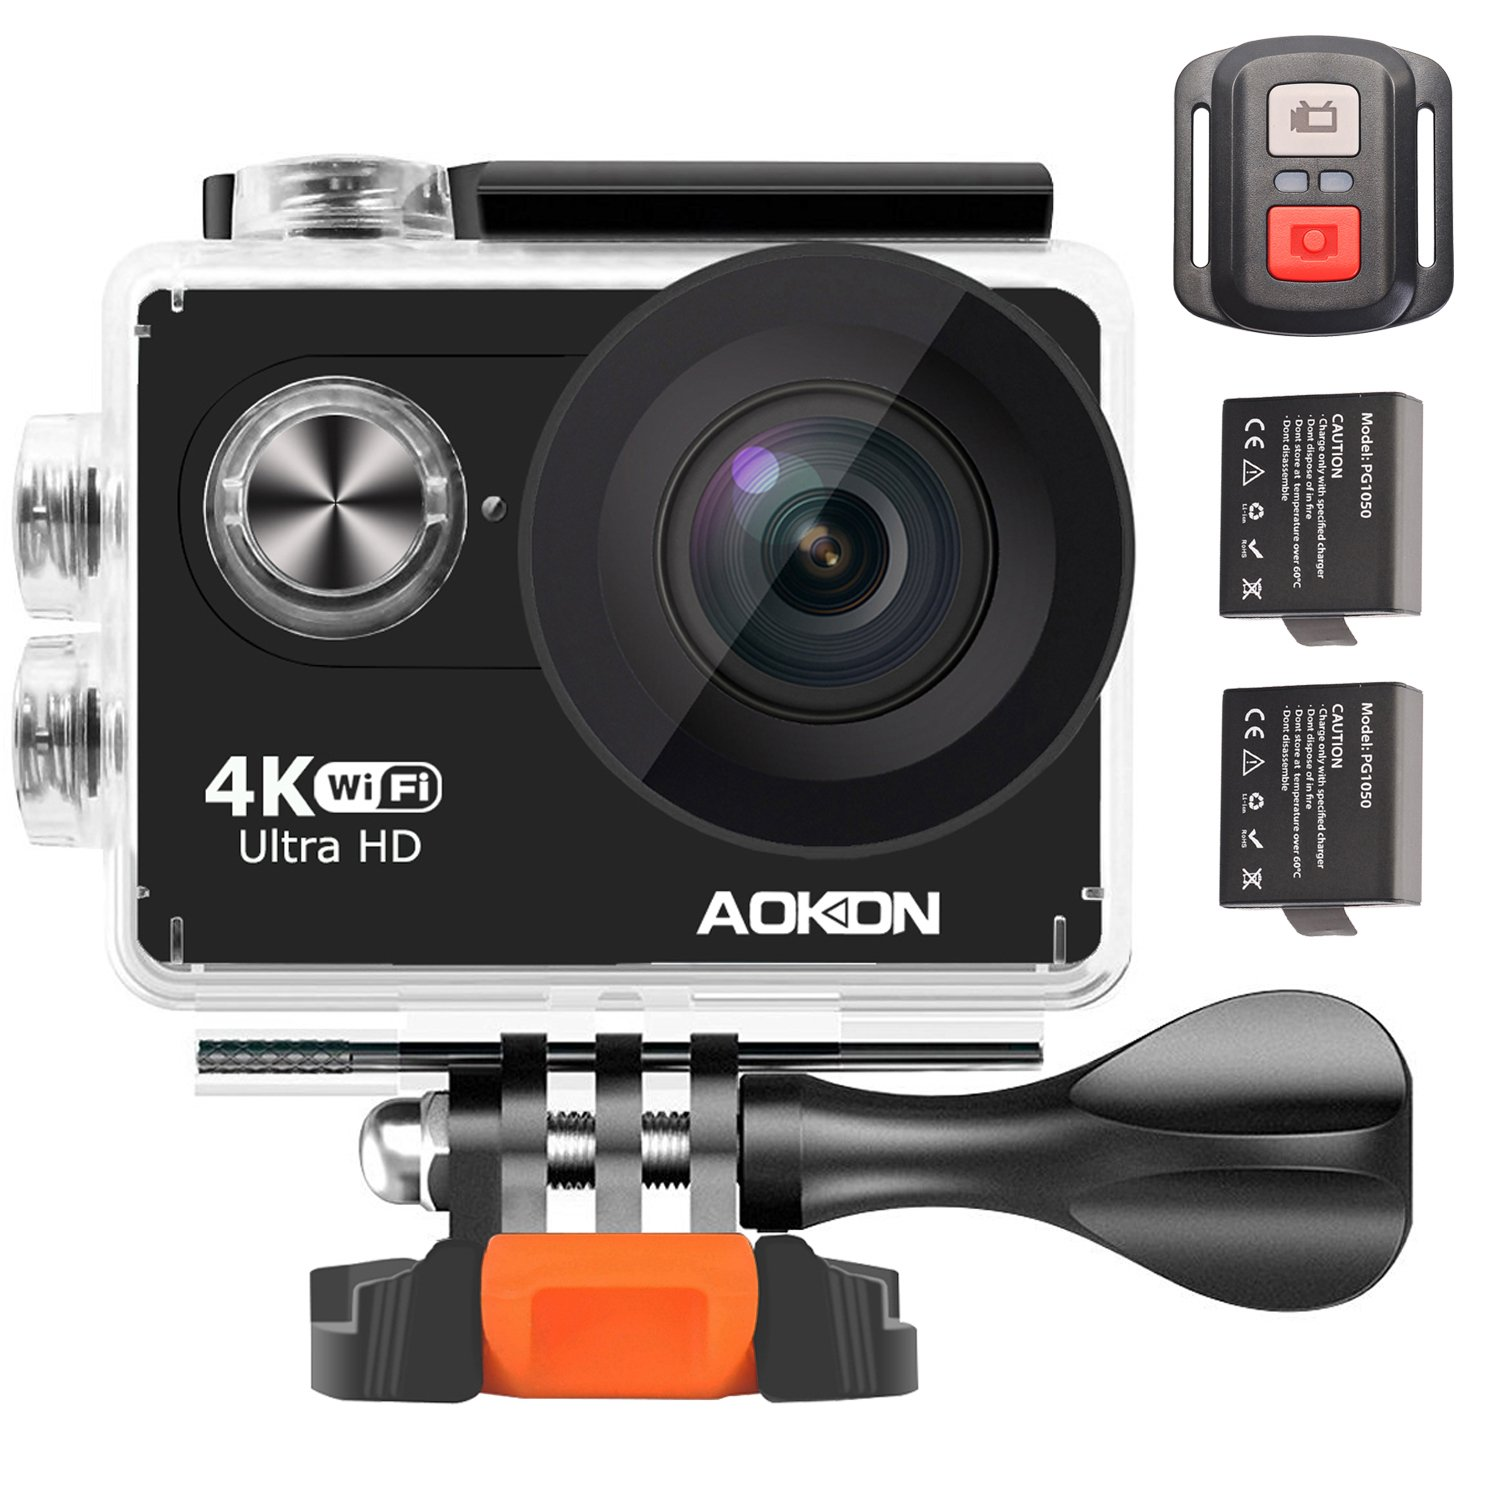 Aokon 4K Action Camera ARC100 12M Ultra HD Underwater Waterproof WiFi Sports Digital Video Camera with 2.0 LCD 2 Batteries Remote Control 170 Wide Angle Lens and Full Accessories Kits by AOKON